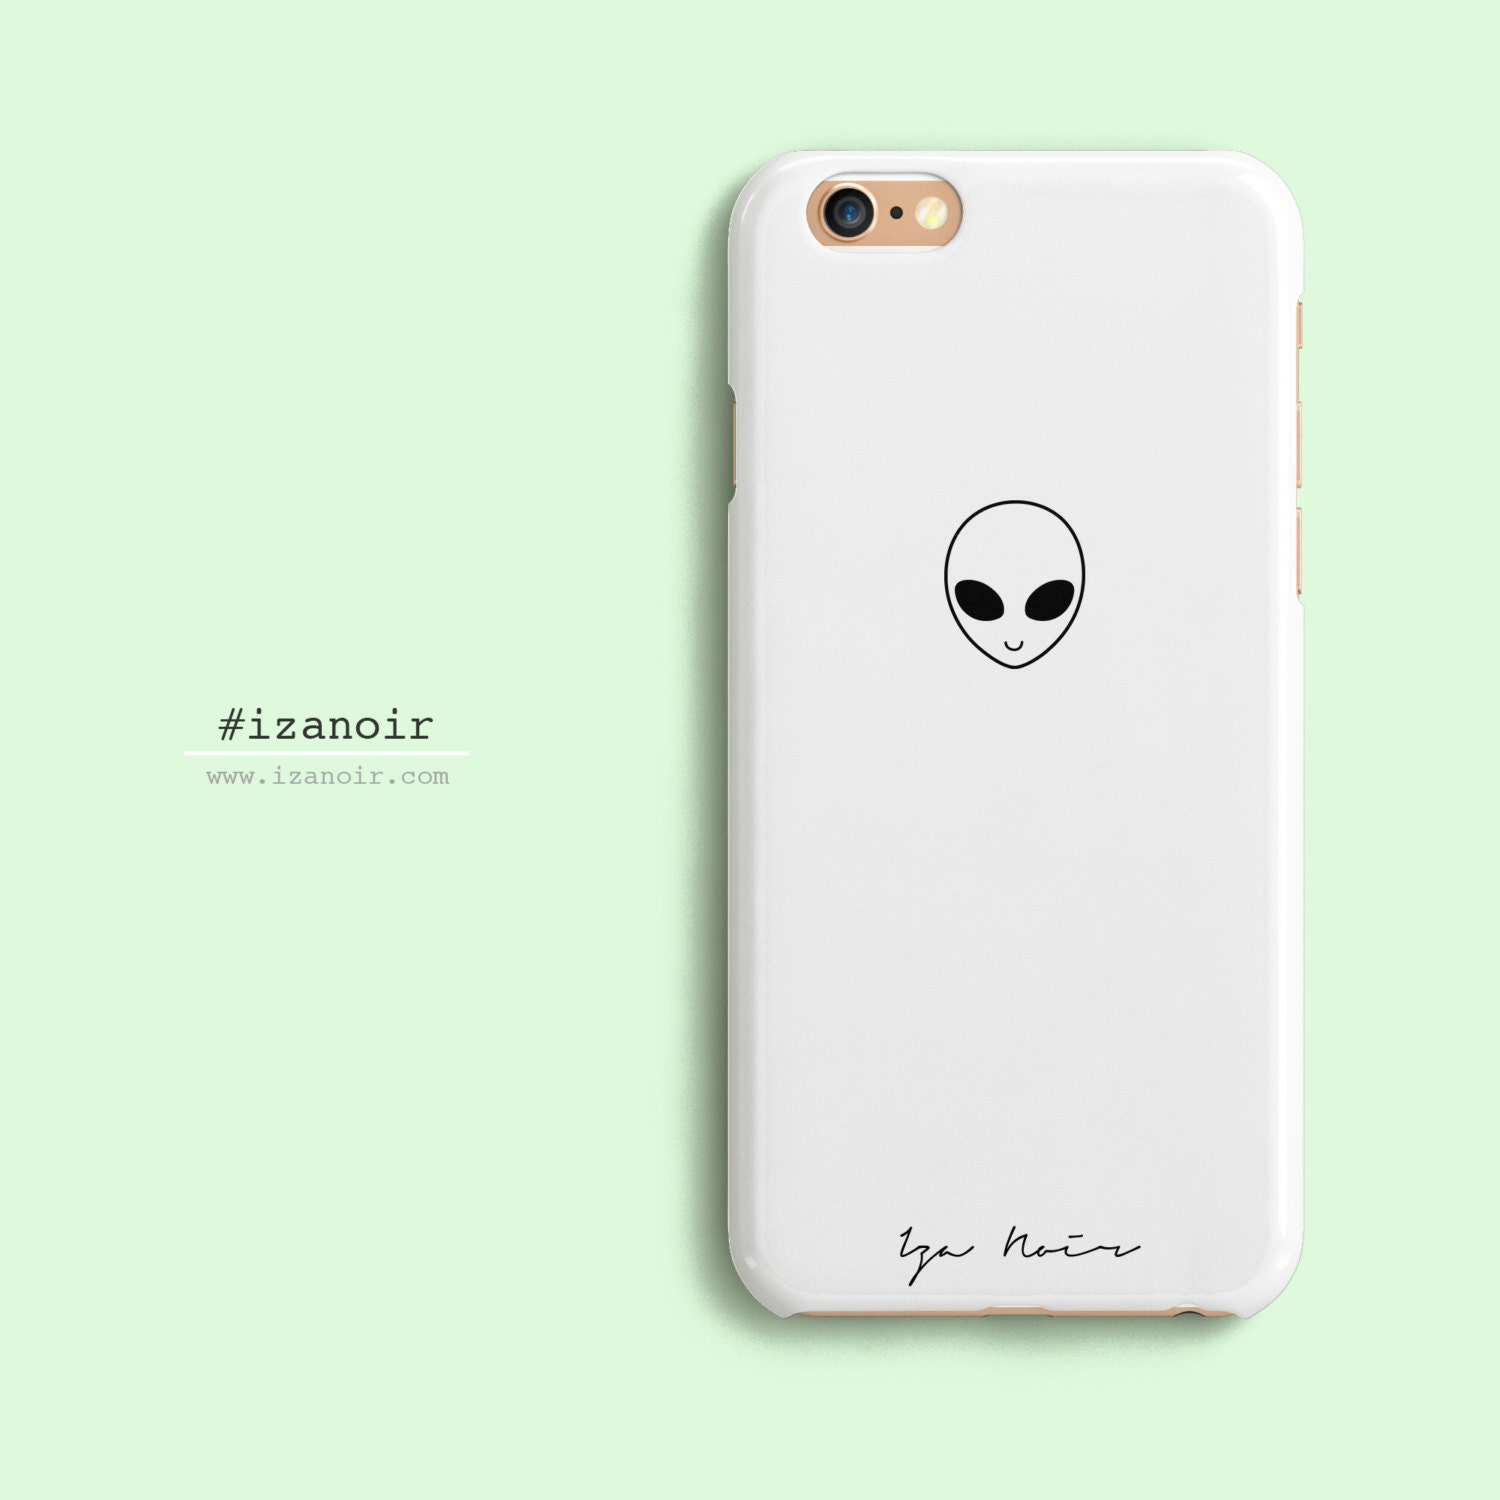 tumblr iphone cases iphone 8 new iphone matte iphone iphone 6 3688